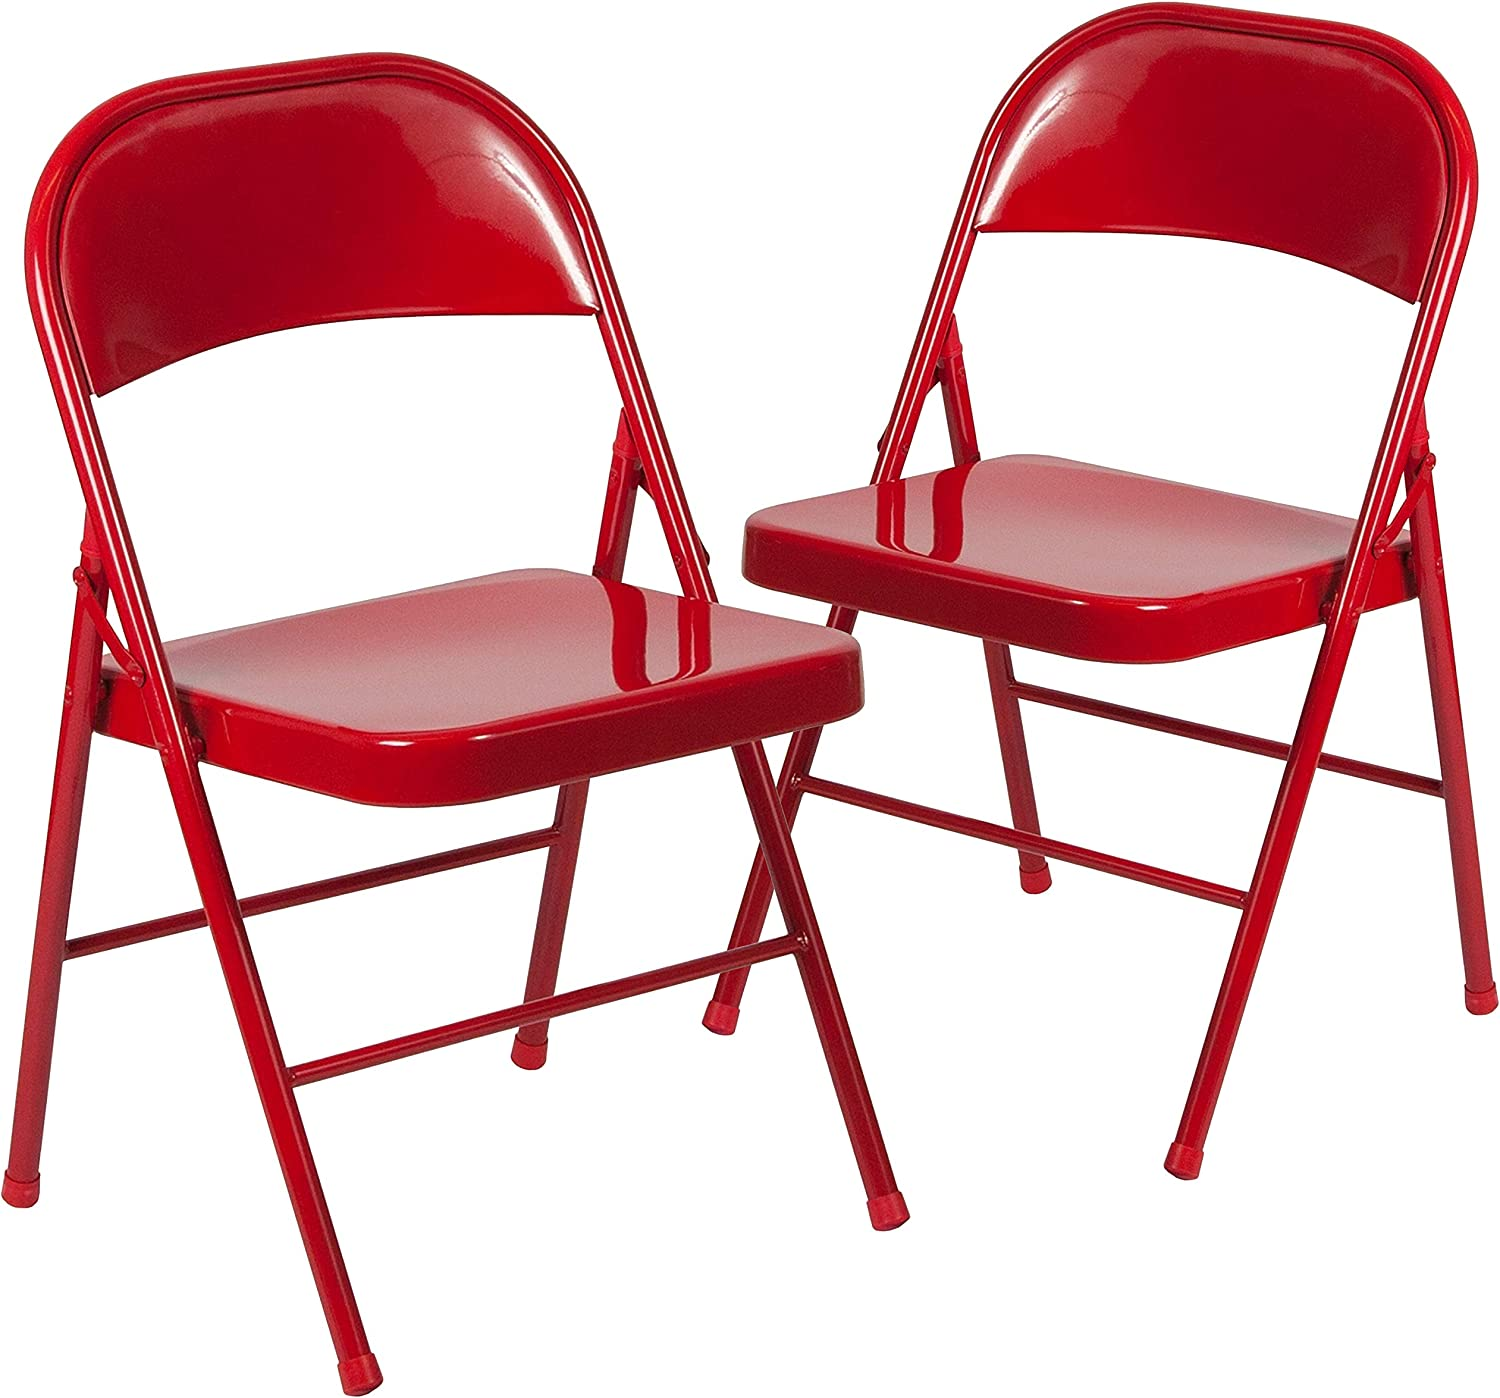 Flash Furniture 2 Pk. HERCULES Series Double Braced Red Metal Folding Chair